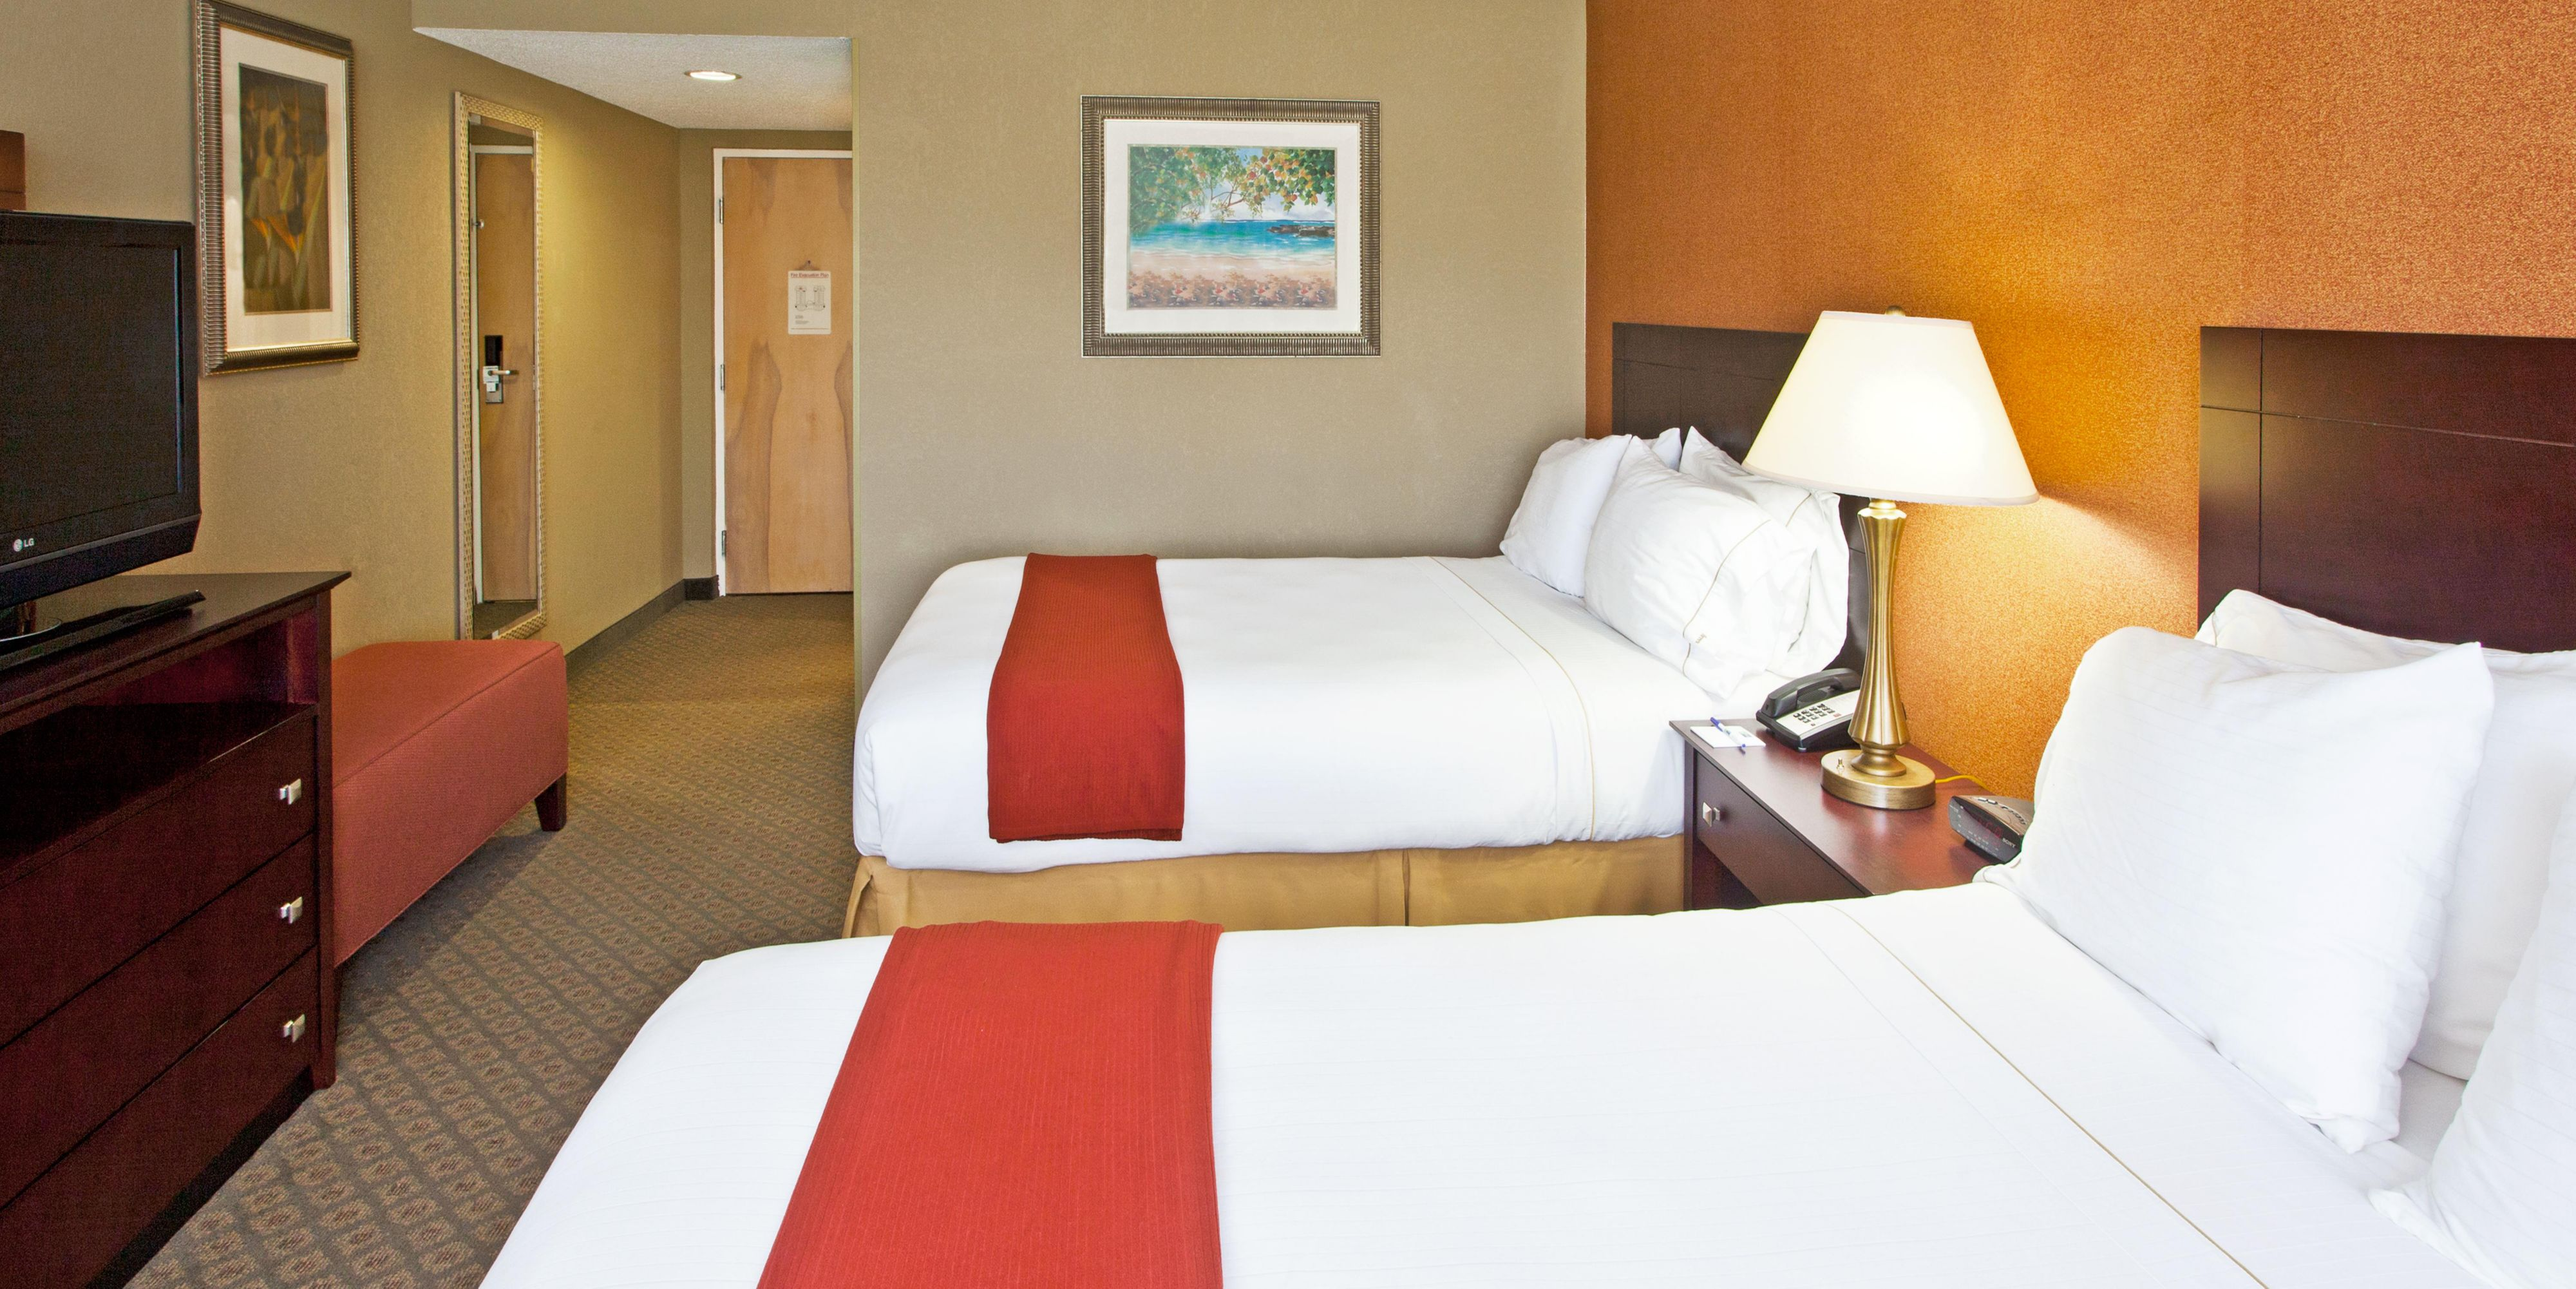 Holiday Inn Express Clearwater 4244569637 2x1